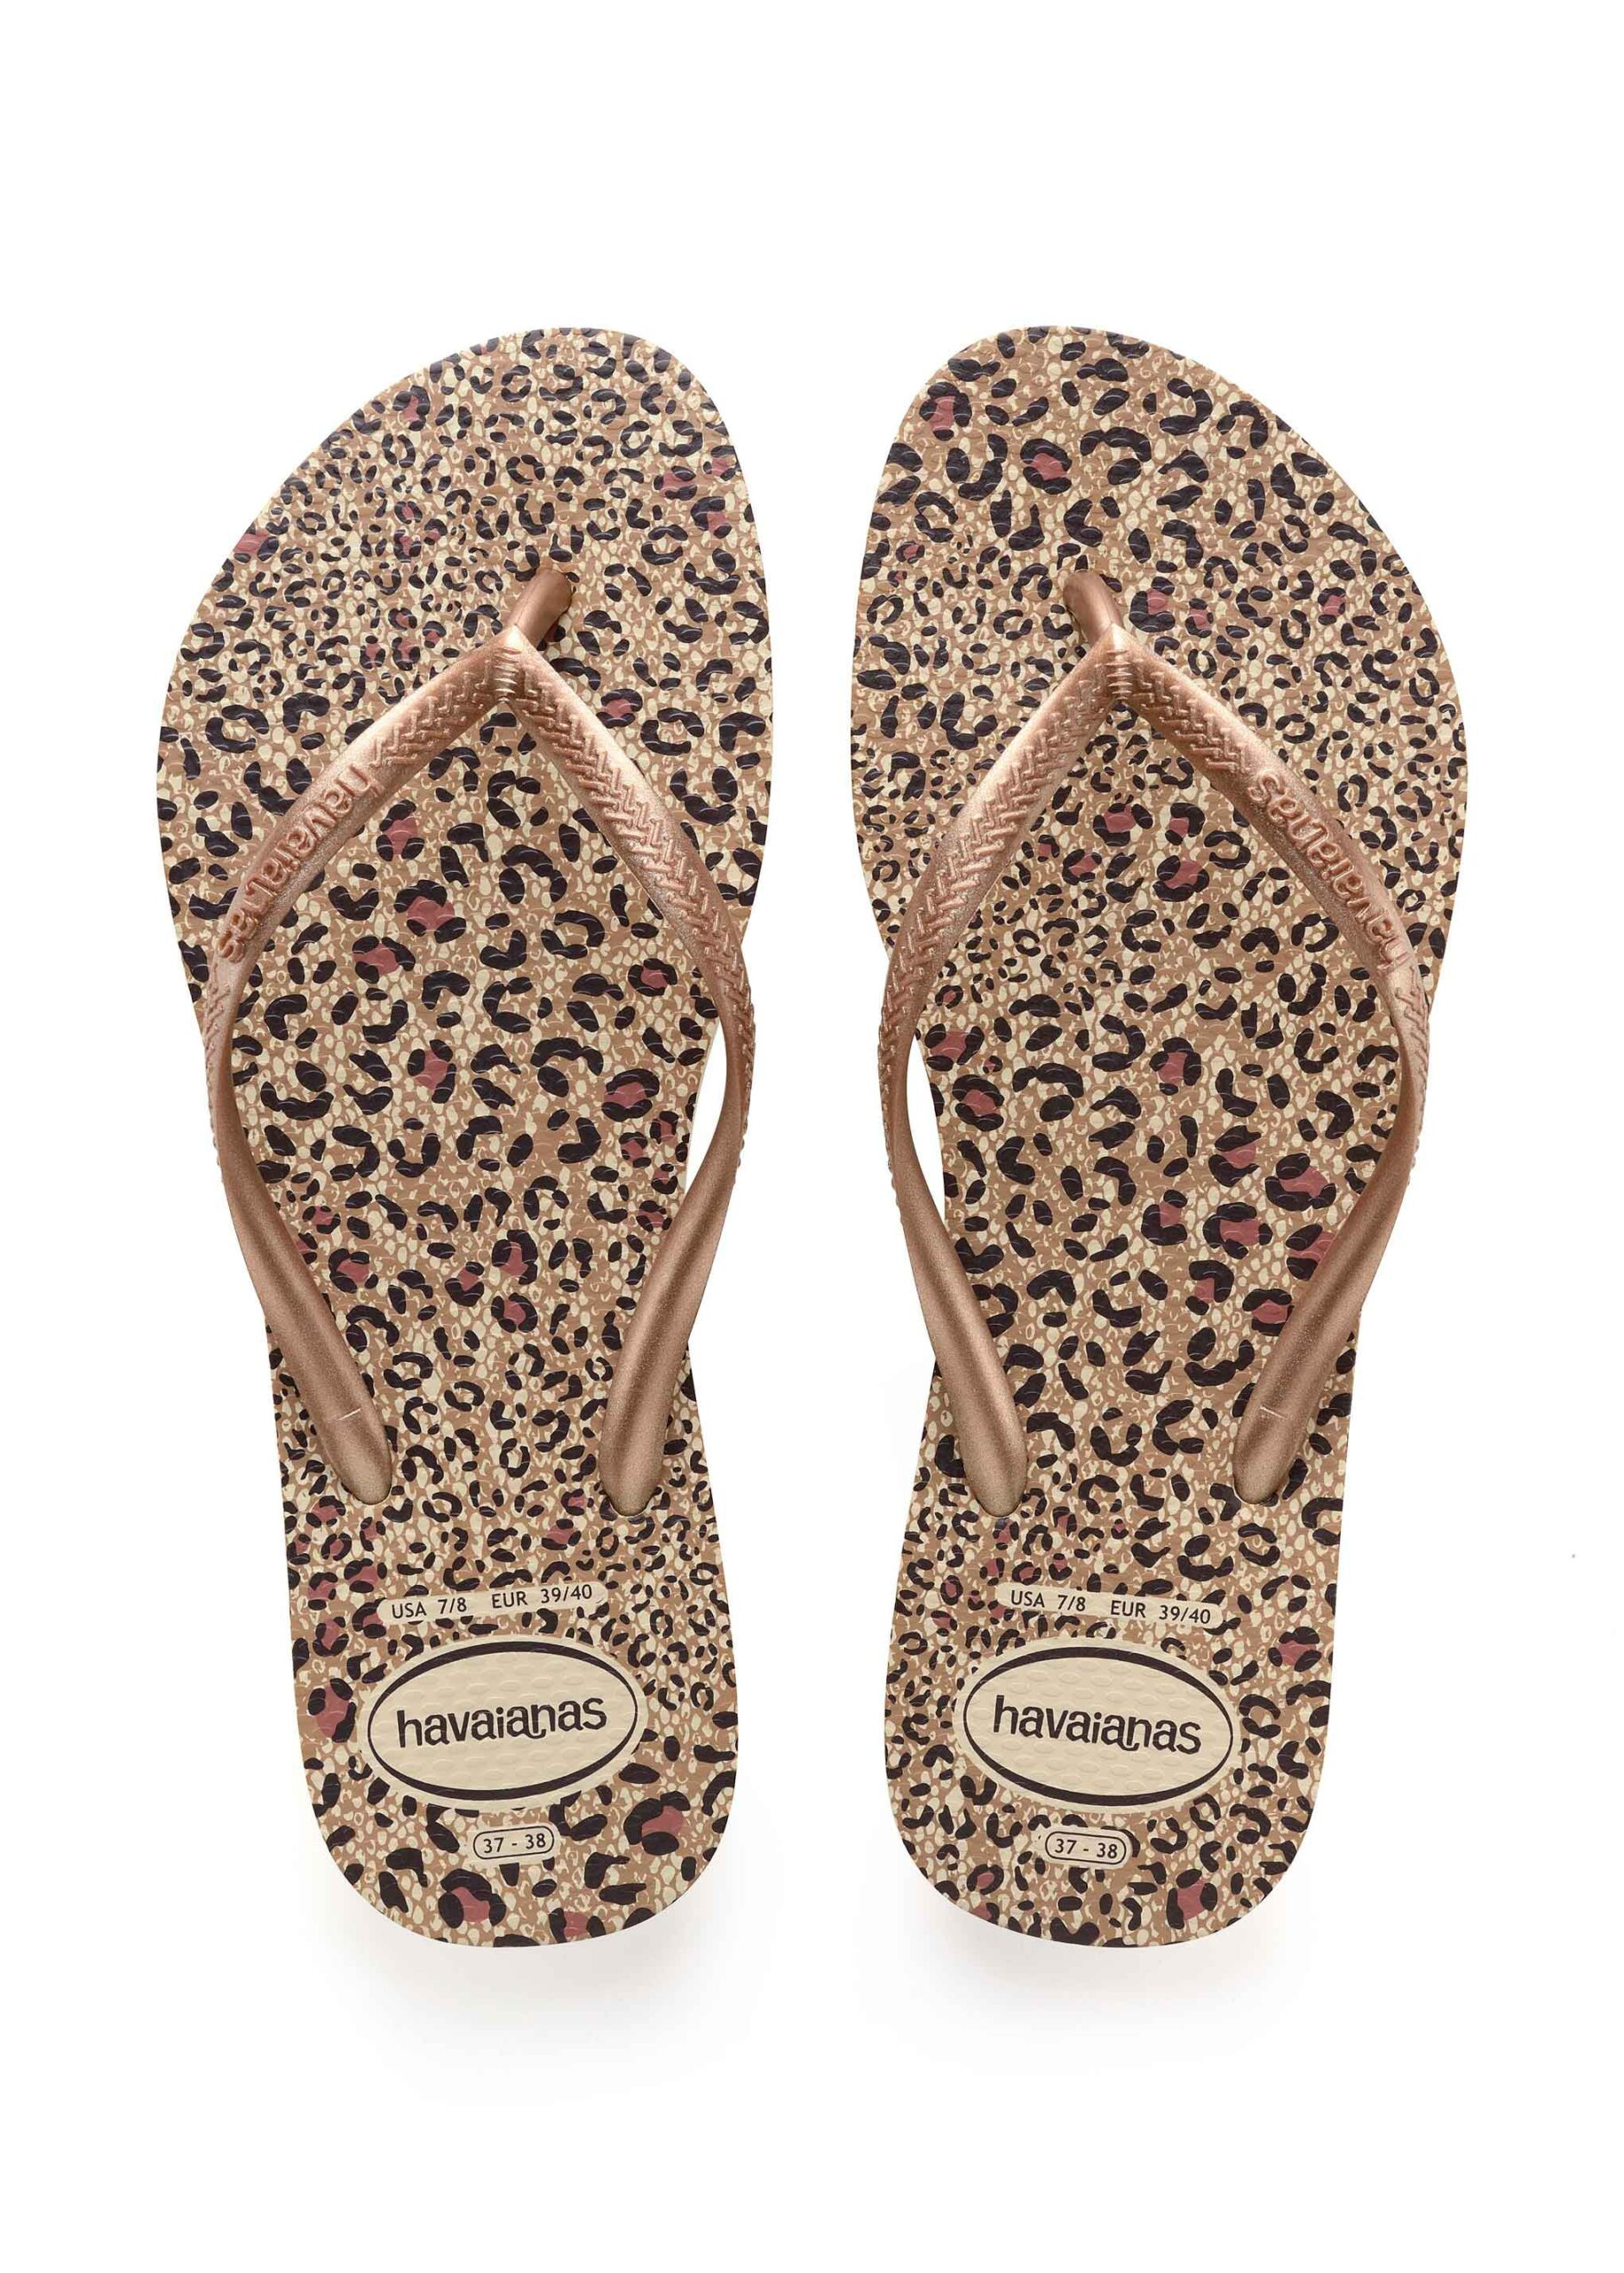 Product image Havaianas Dames Teenslipper Leopard